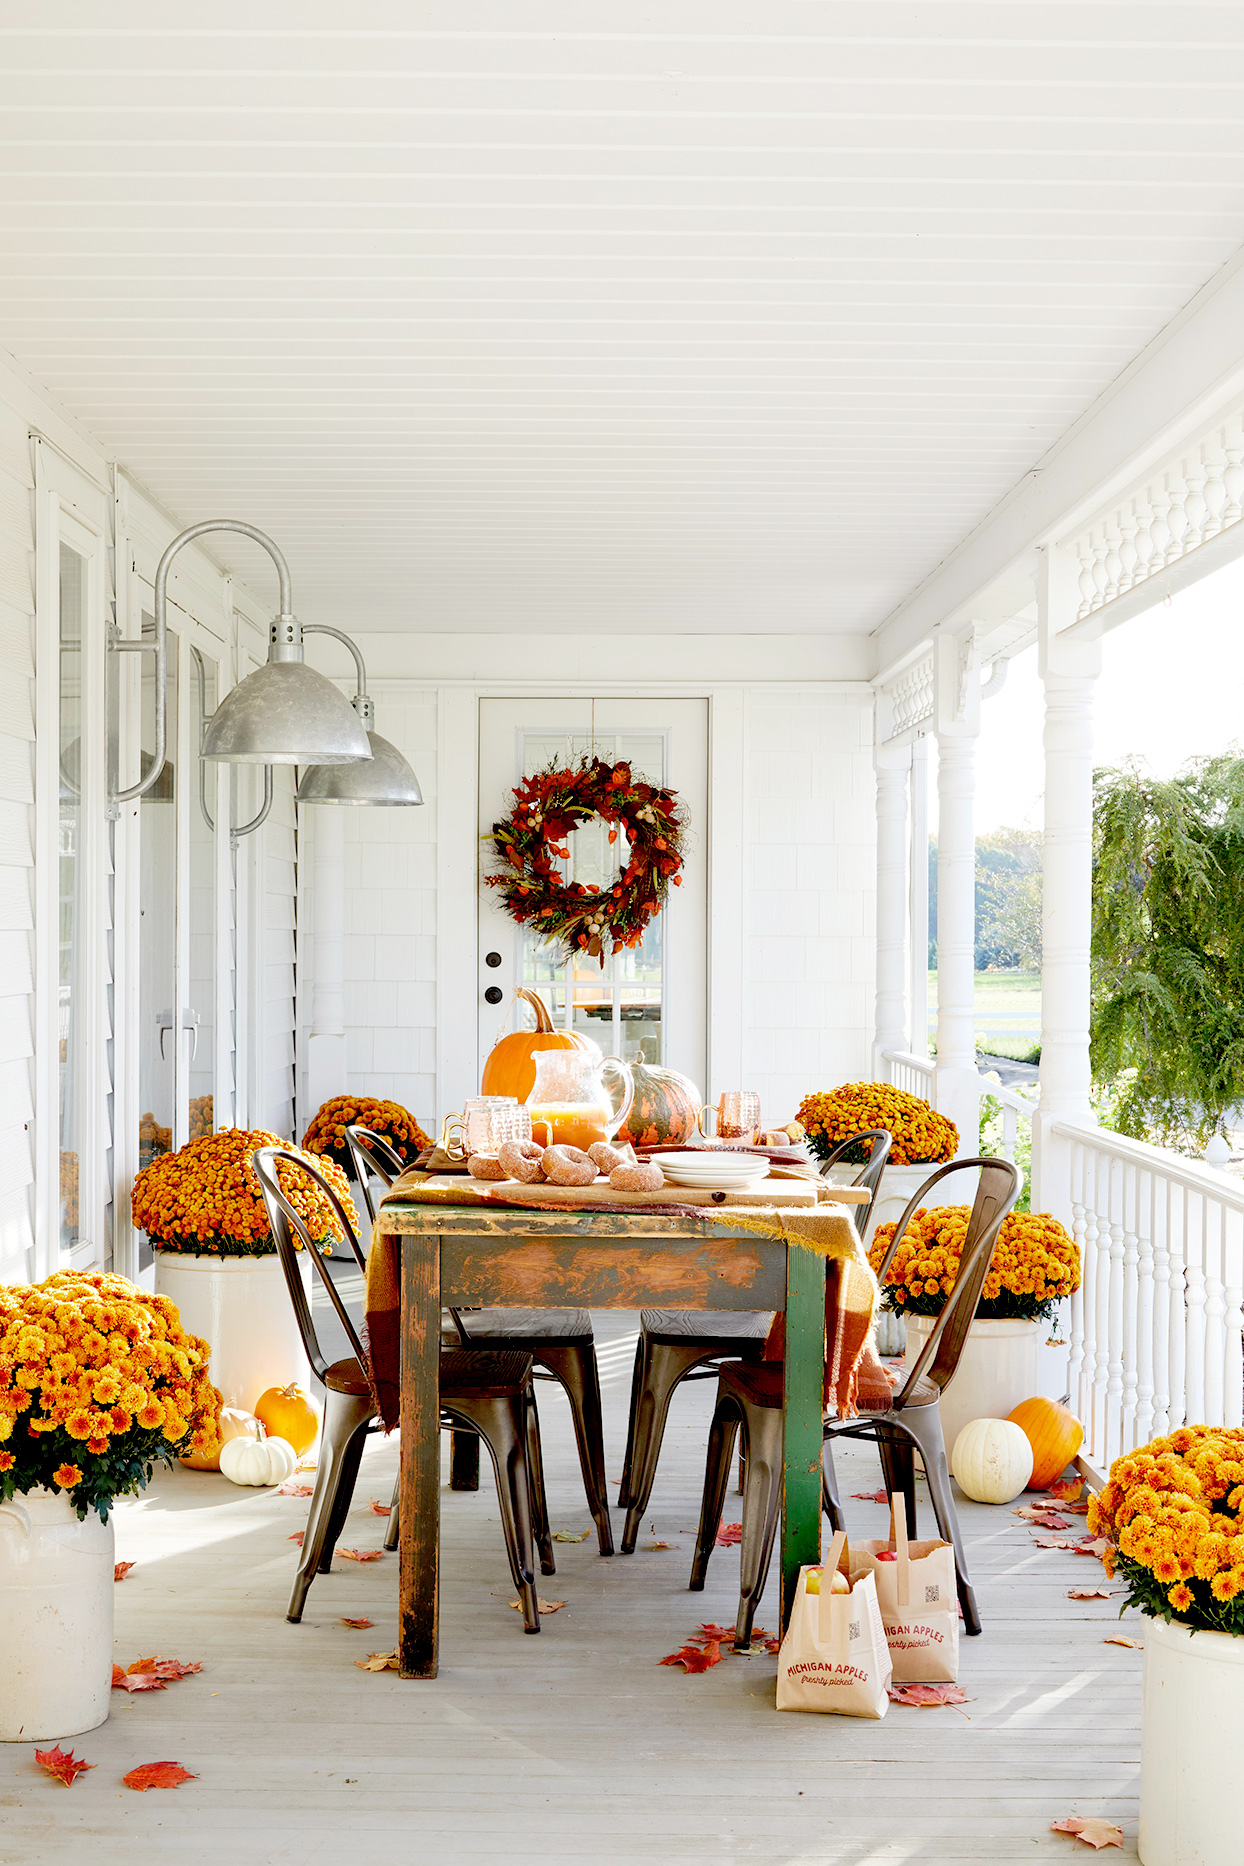 Fall table setting with wreath, marigolds